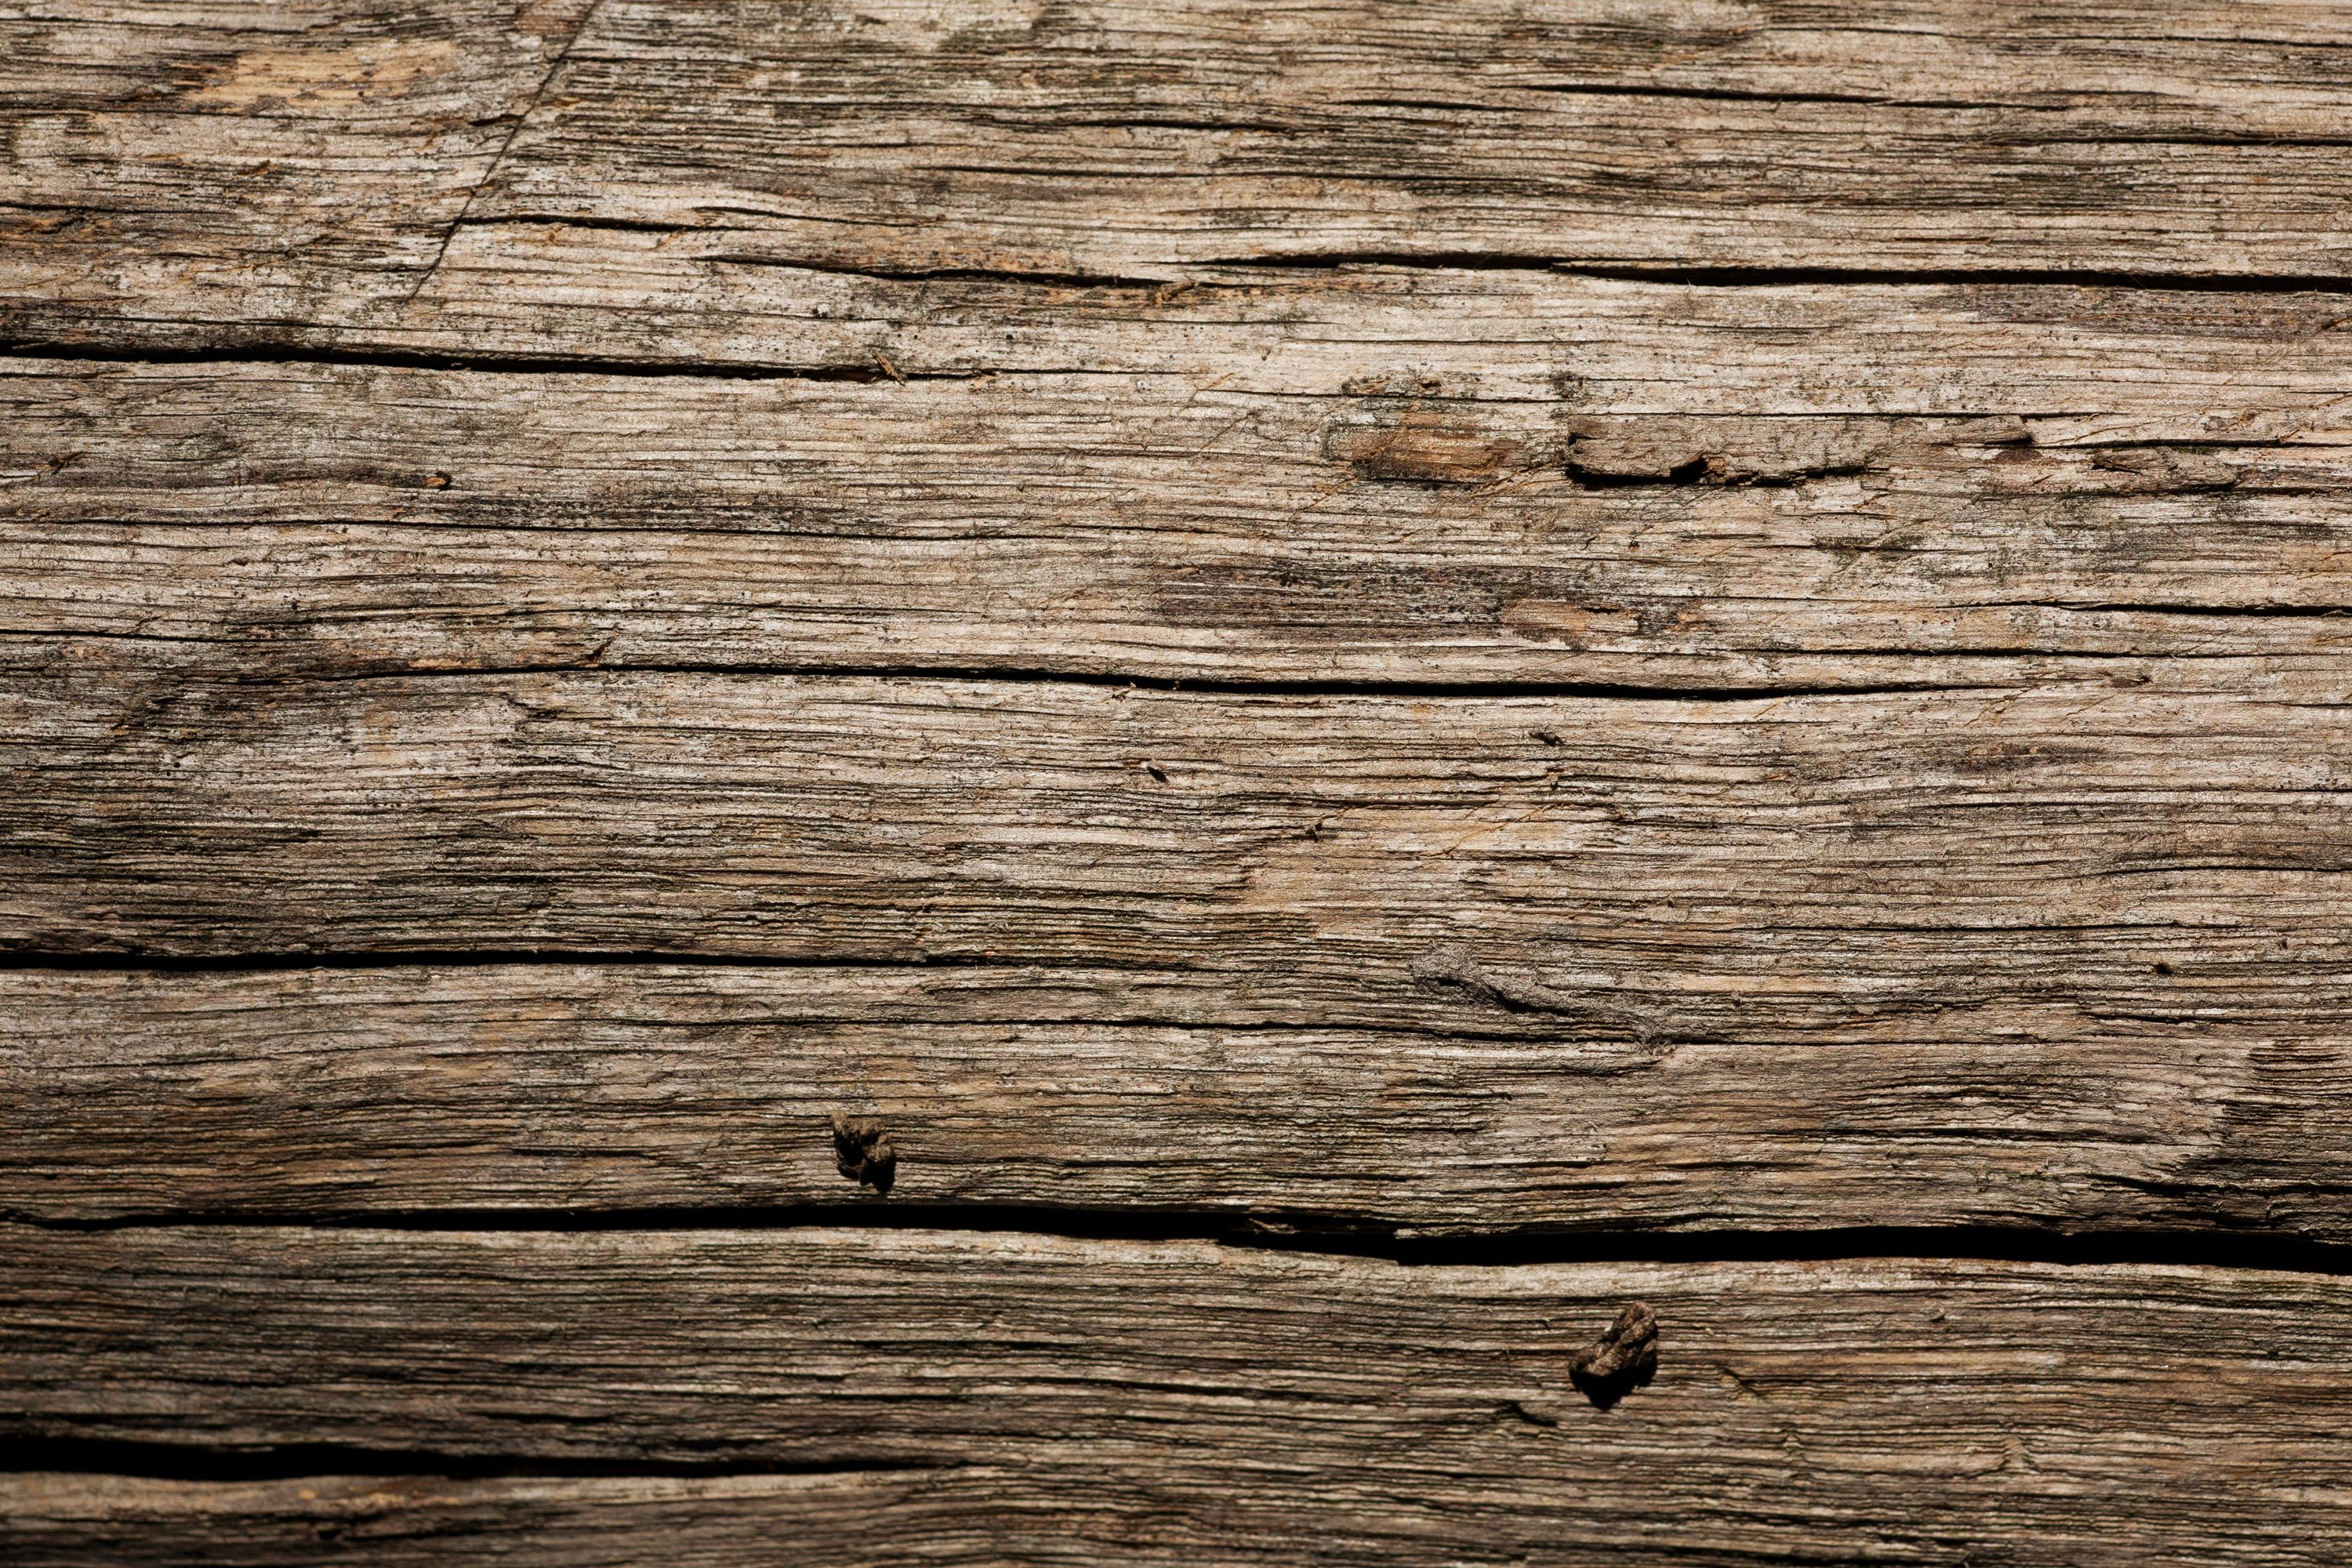 17 Best images about Textures on Pinterest | Wood texture, Old ...